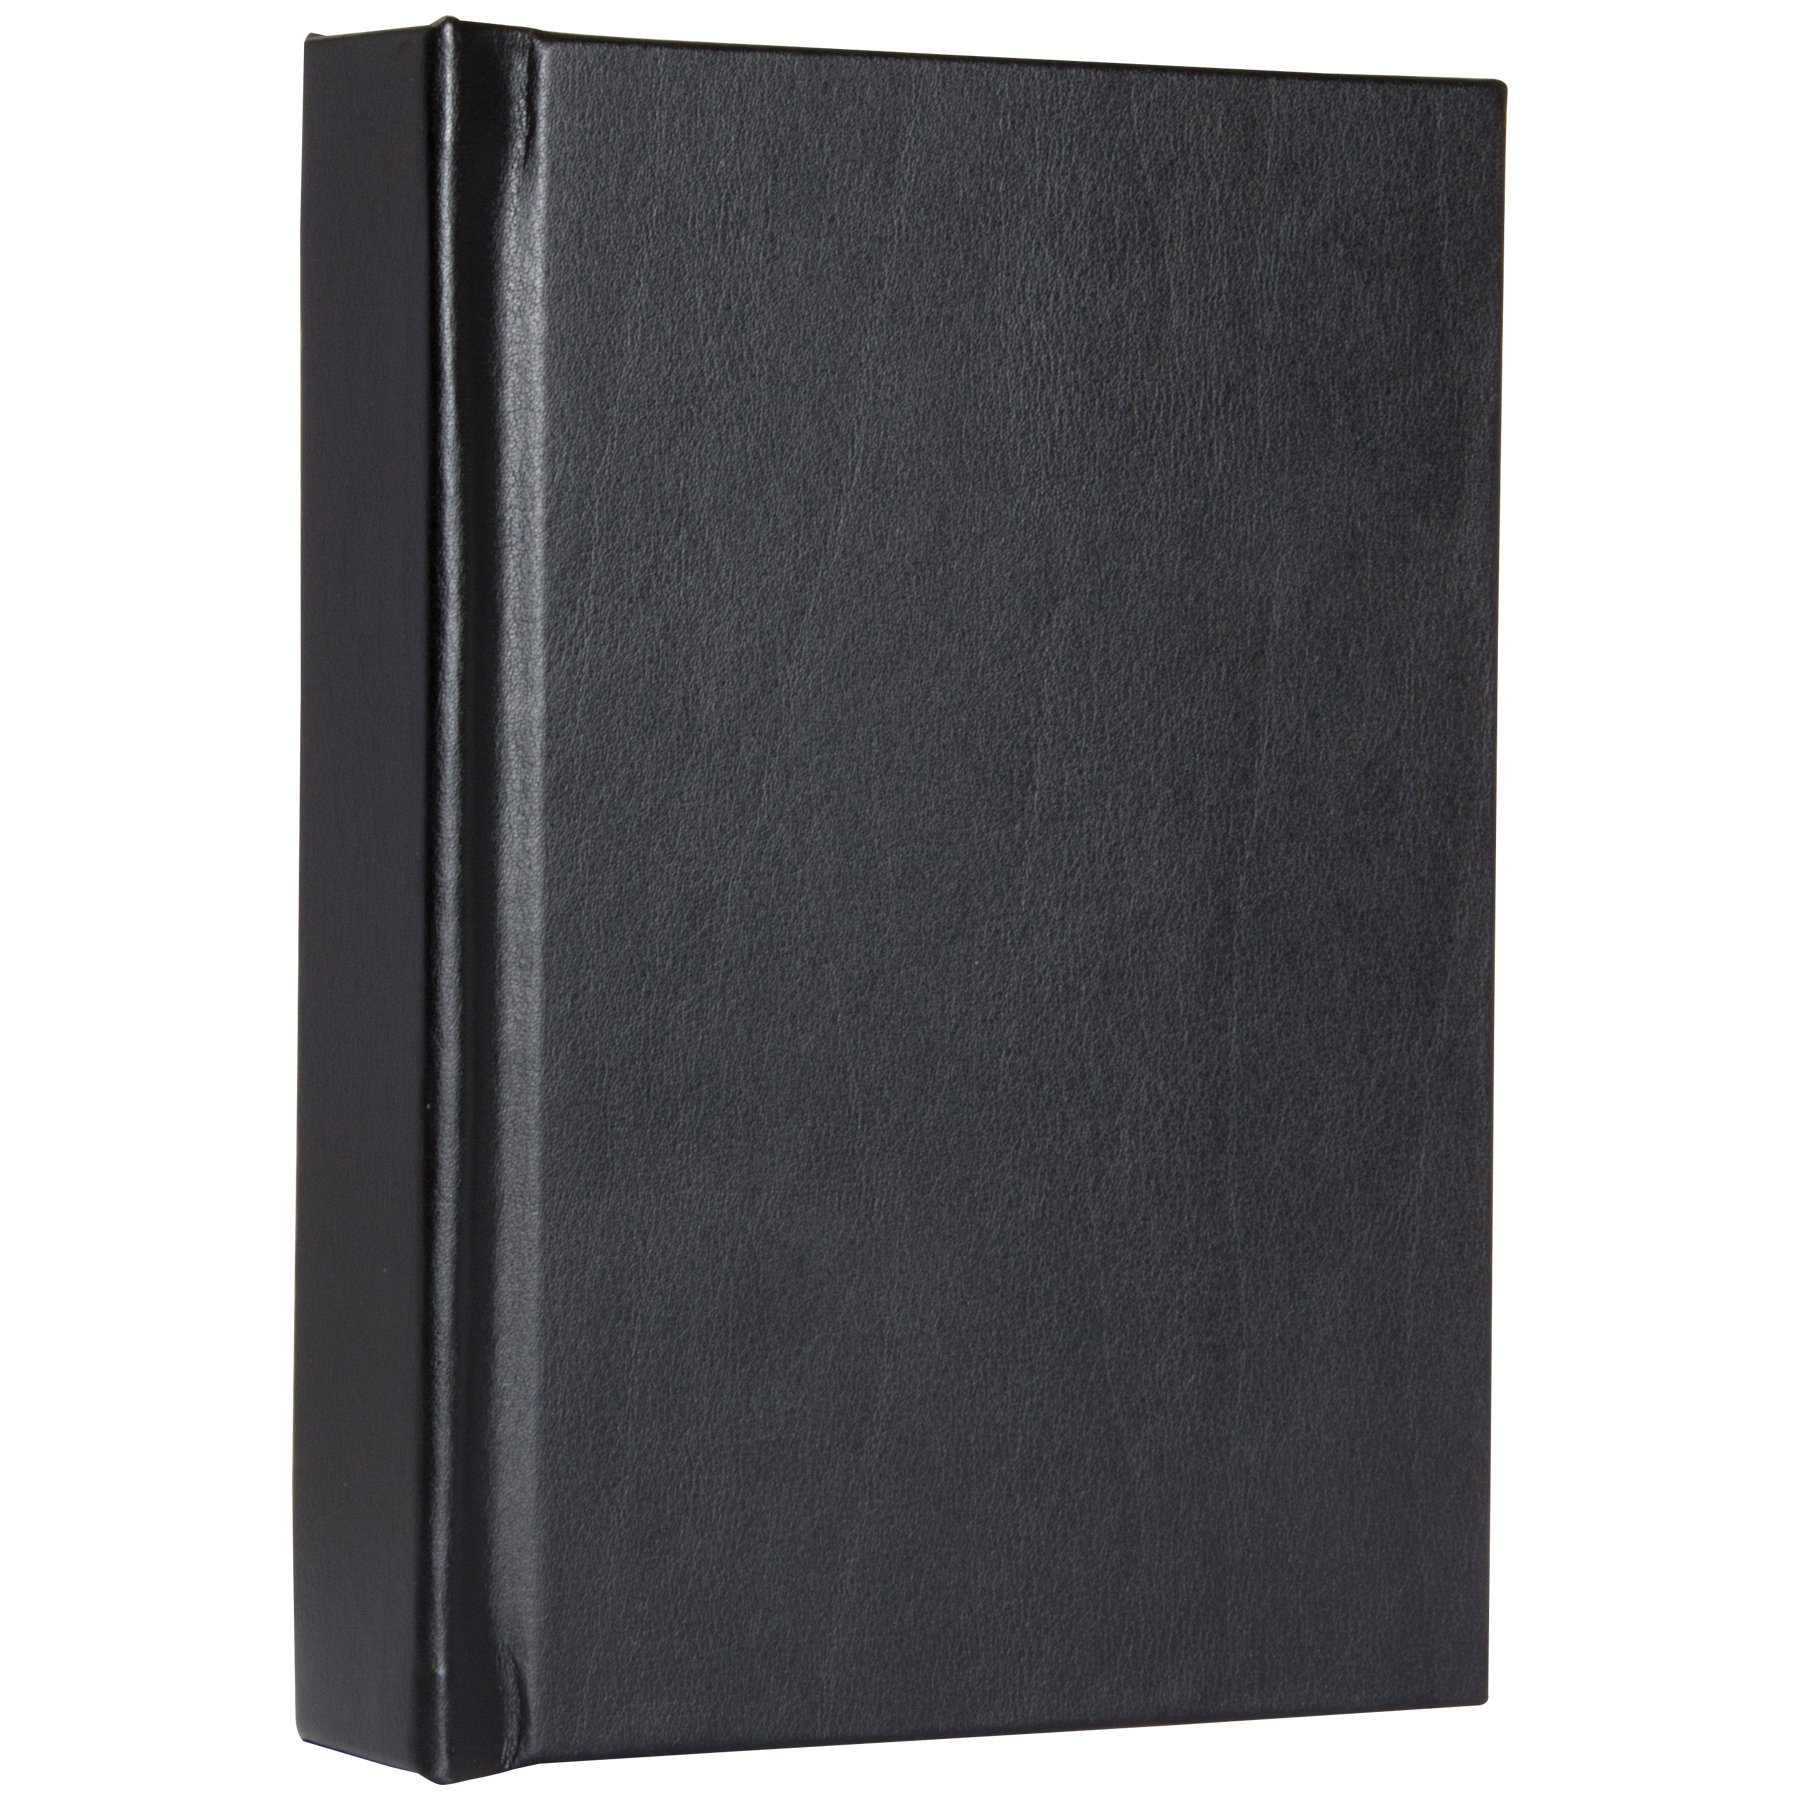 4'' x 6'' Repositionable Black Vertical Self-Stick Albums - Case of 12